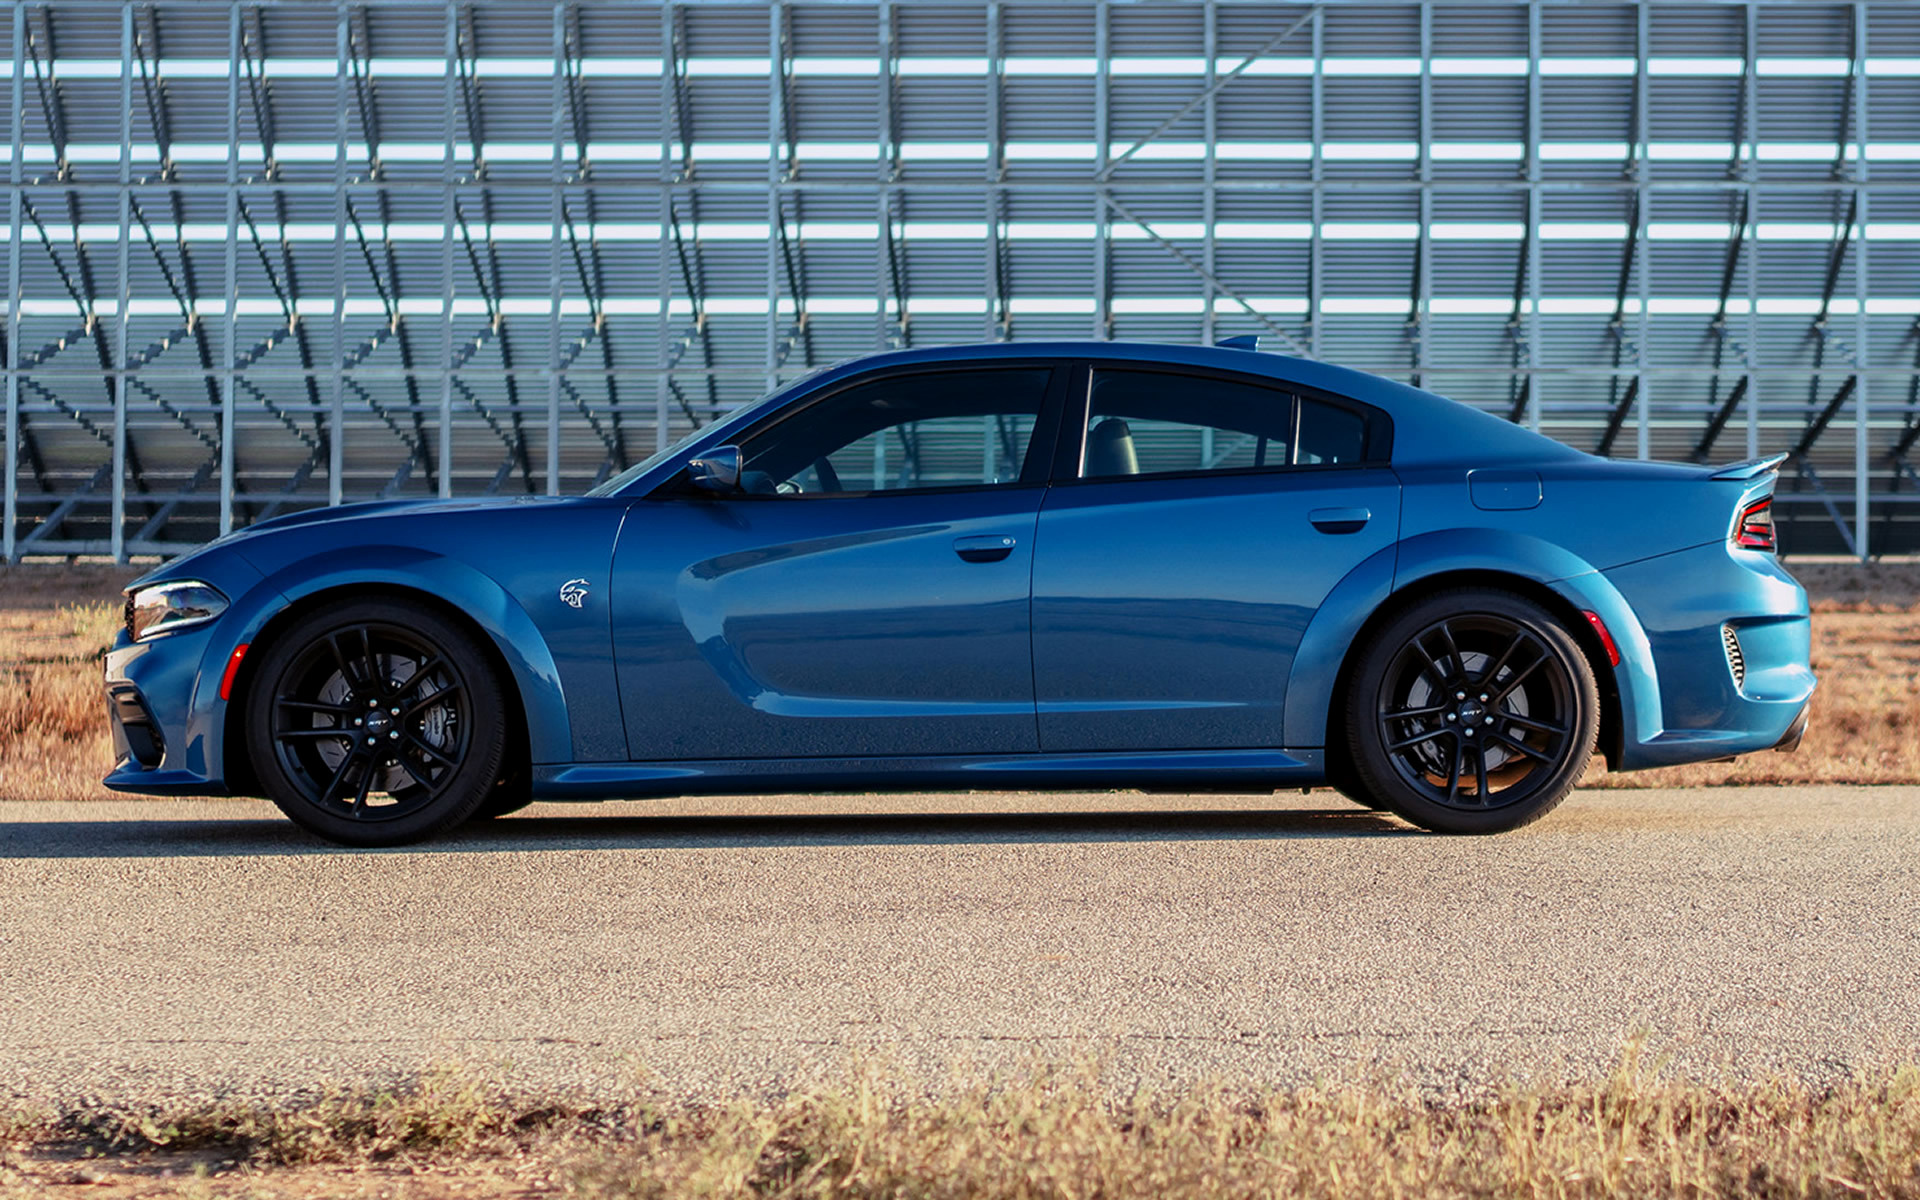 2020 Dodge Charger Srt Hellcat Widebody Wallpapers And